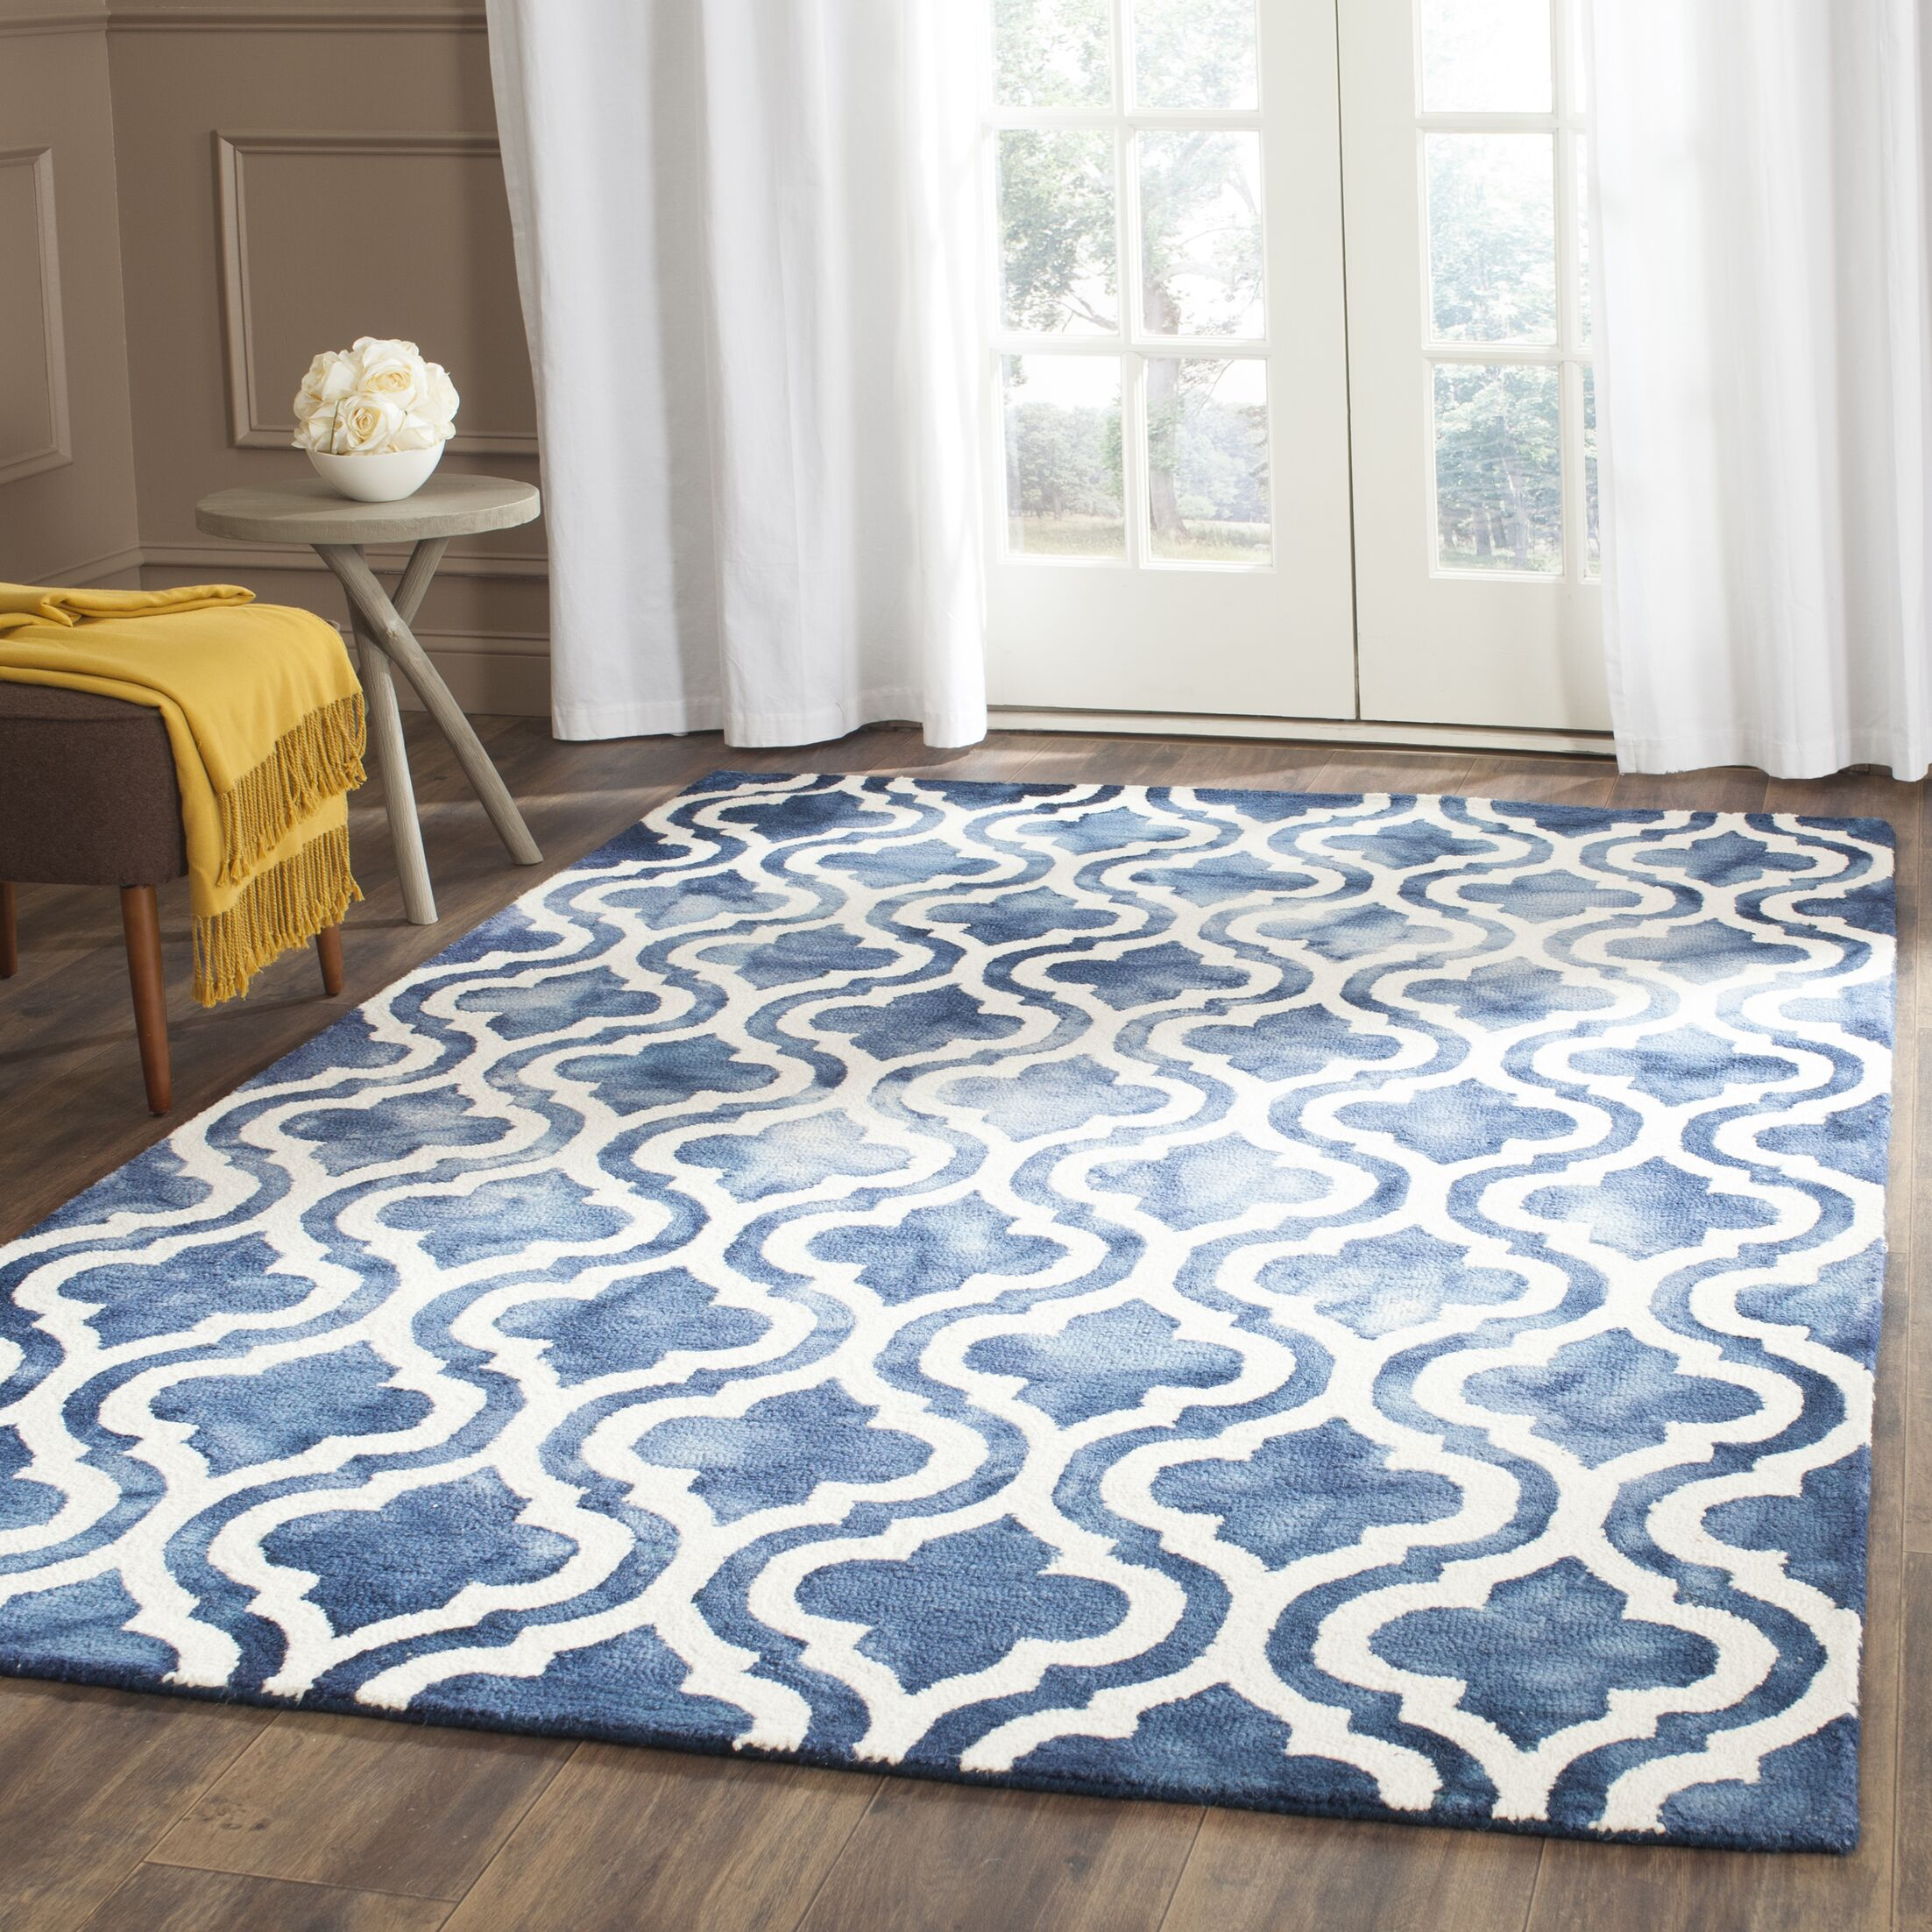 Bettina Hand-Tufted Wool Navy Area Rug Rug Size: Square 7'